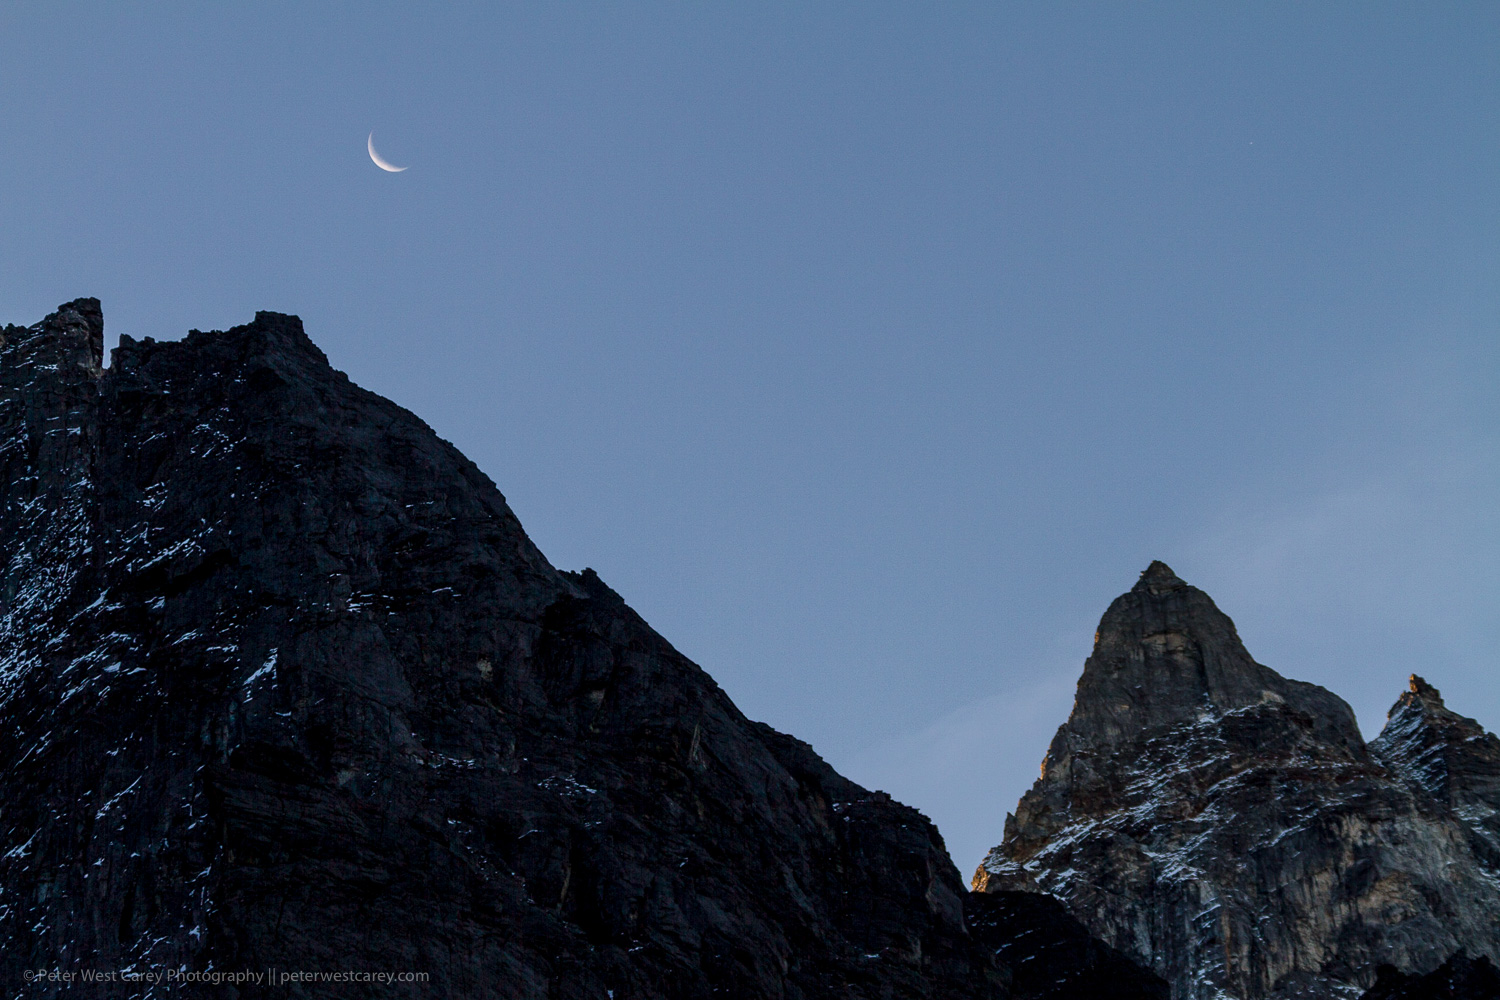 Image: Crescent moon setting over the Himalayas